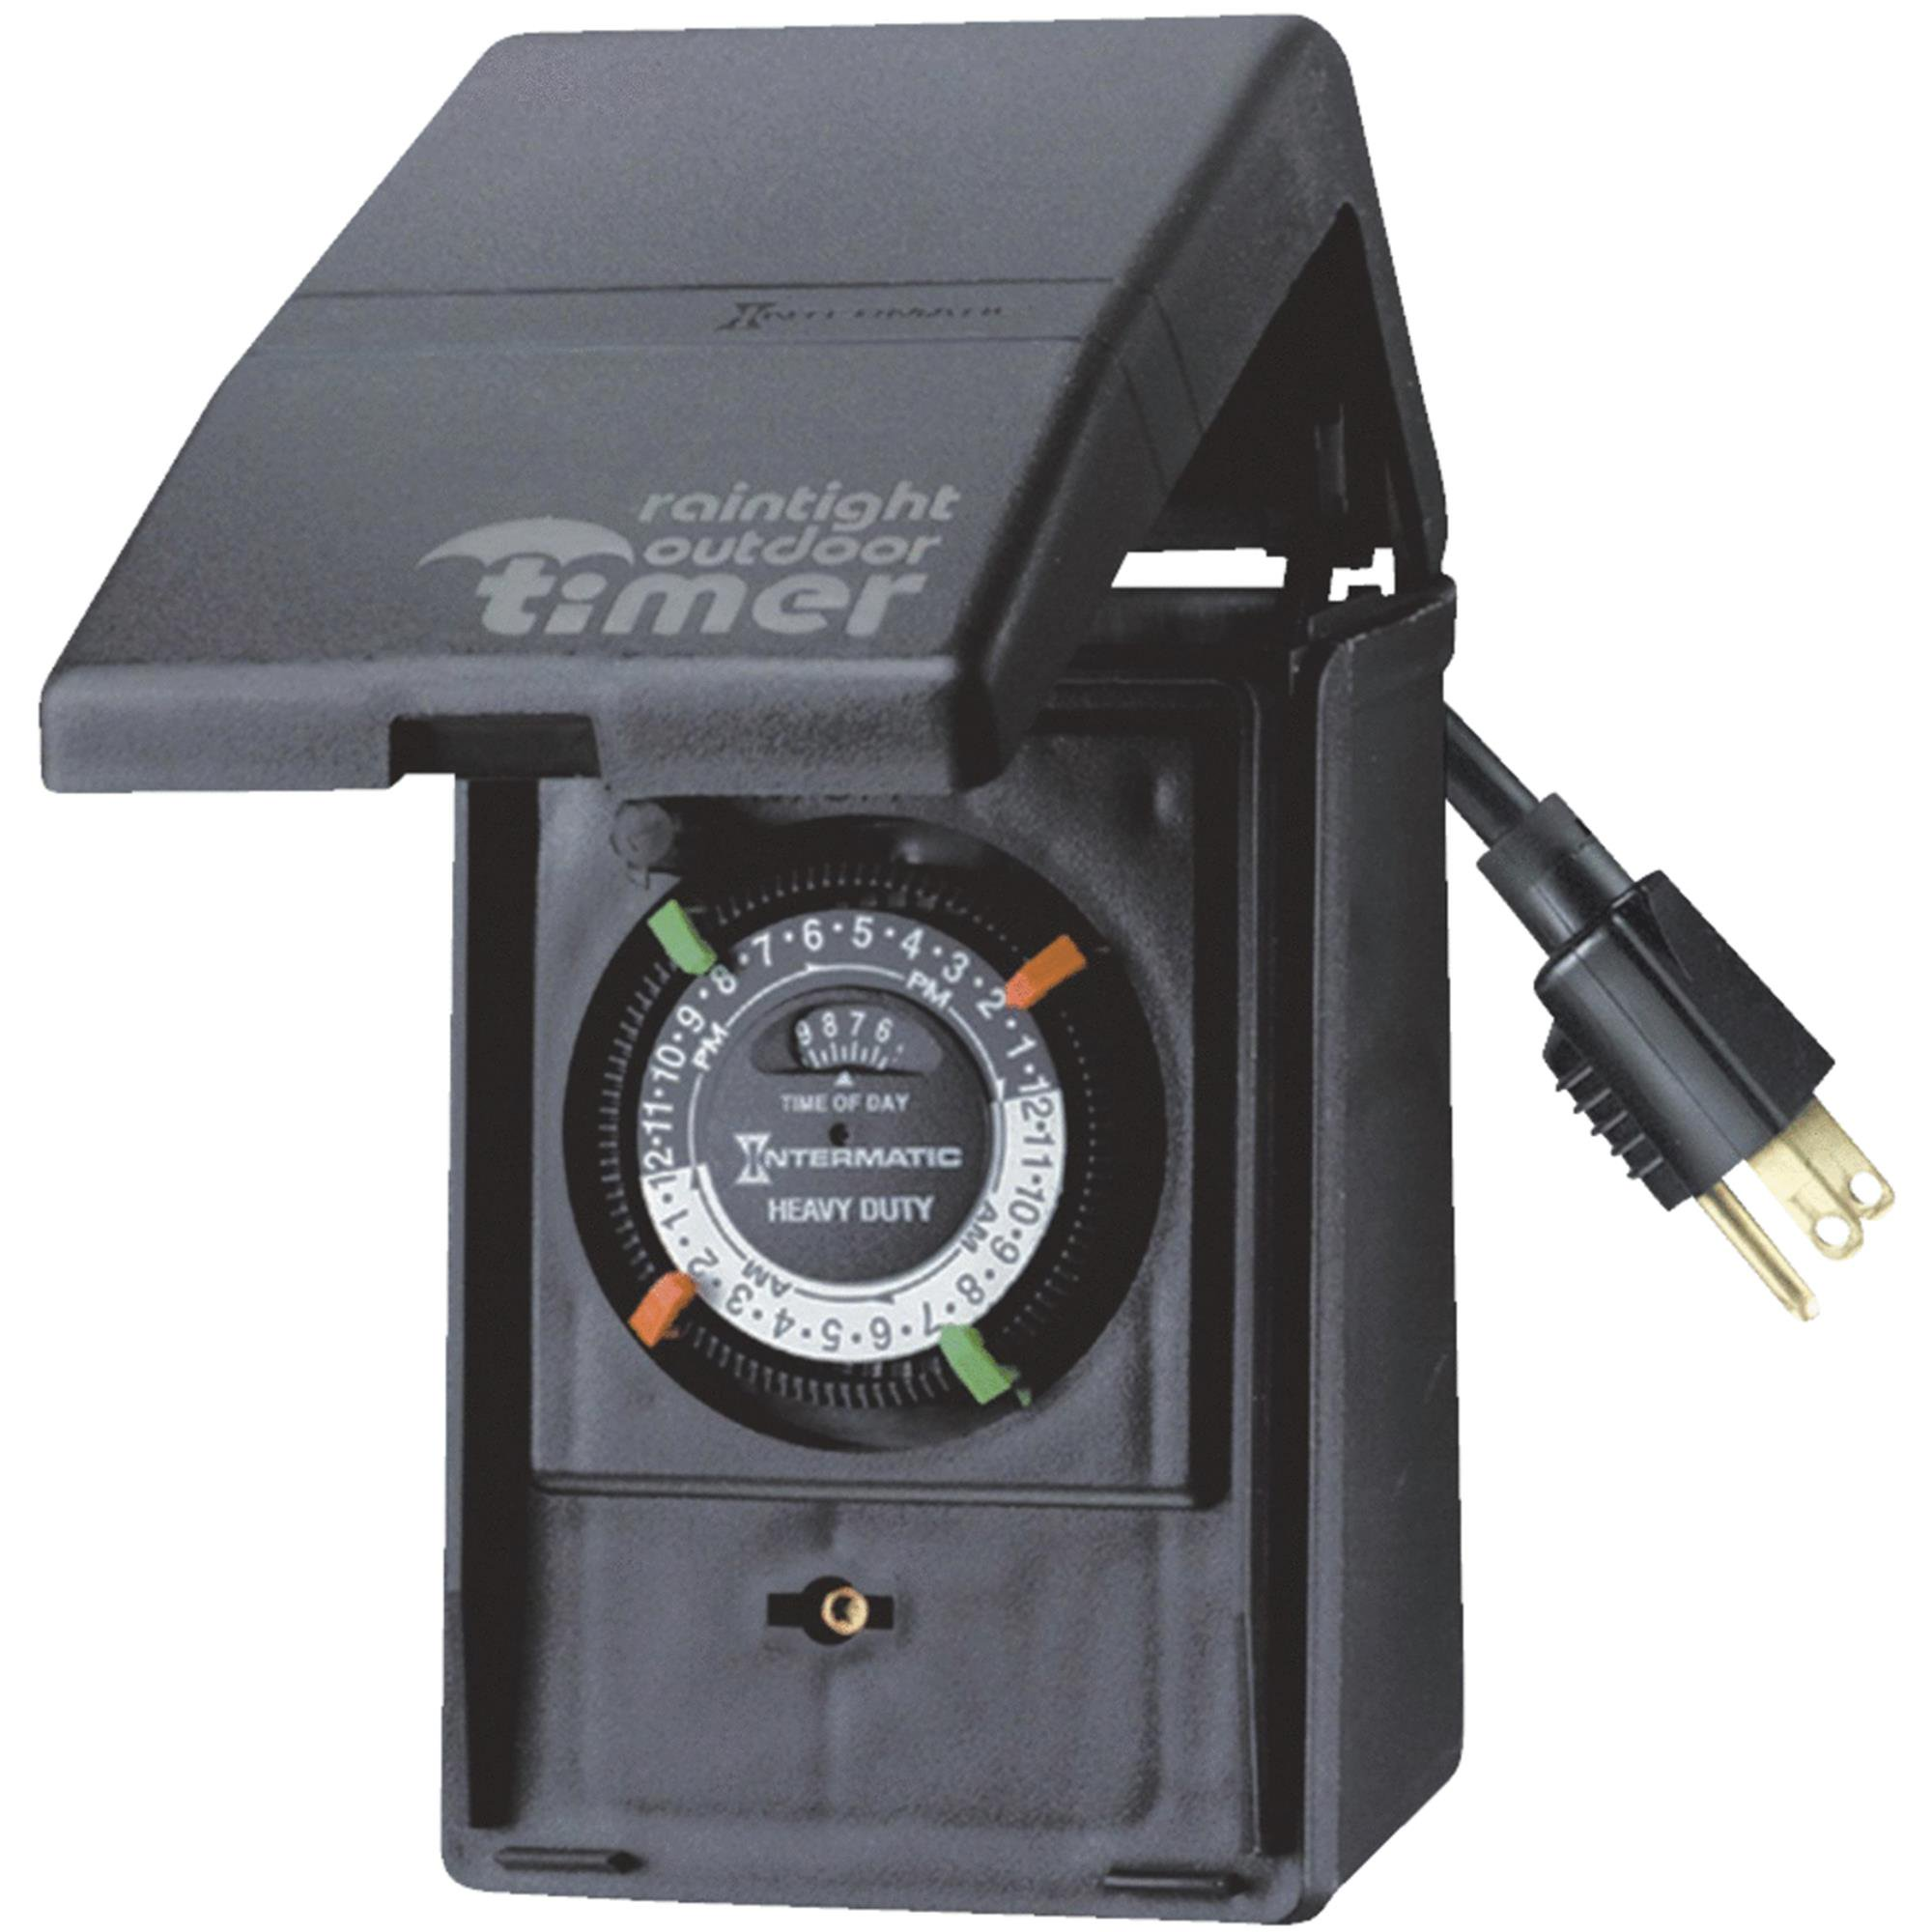 Intermatic HB11K 15-Amp Outdoor Mechanical Plug-In Timer with Weatherproof Enclosure by Intermatic